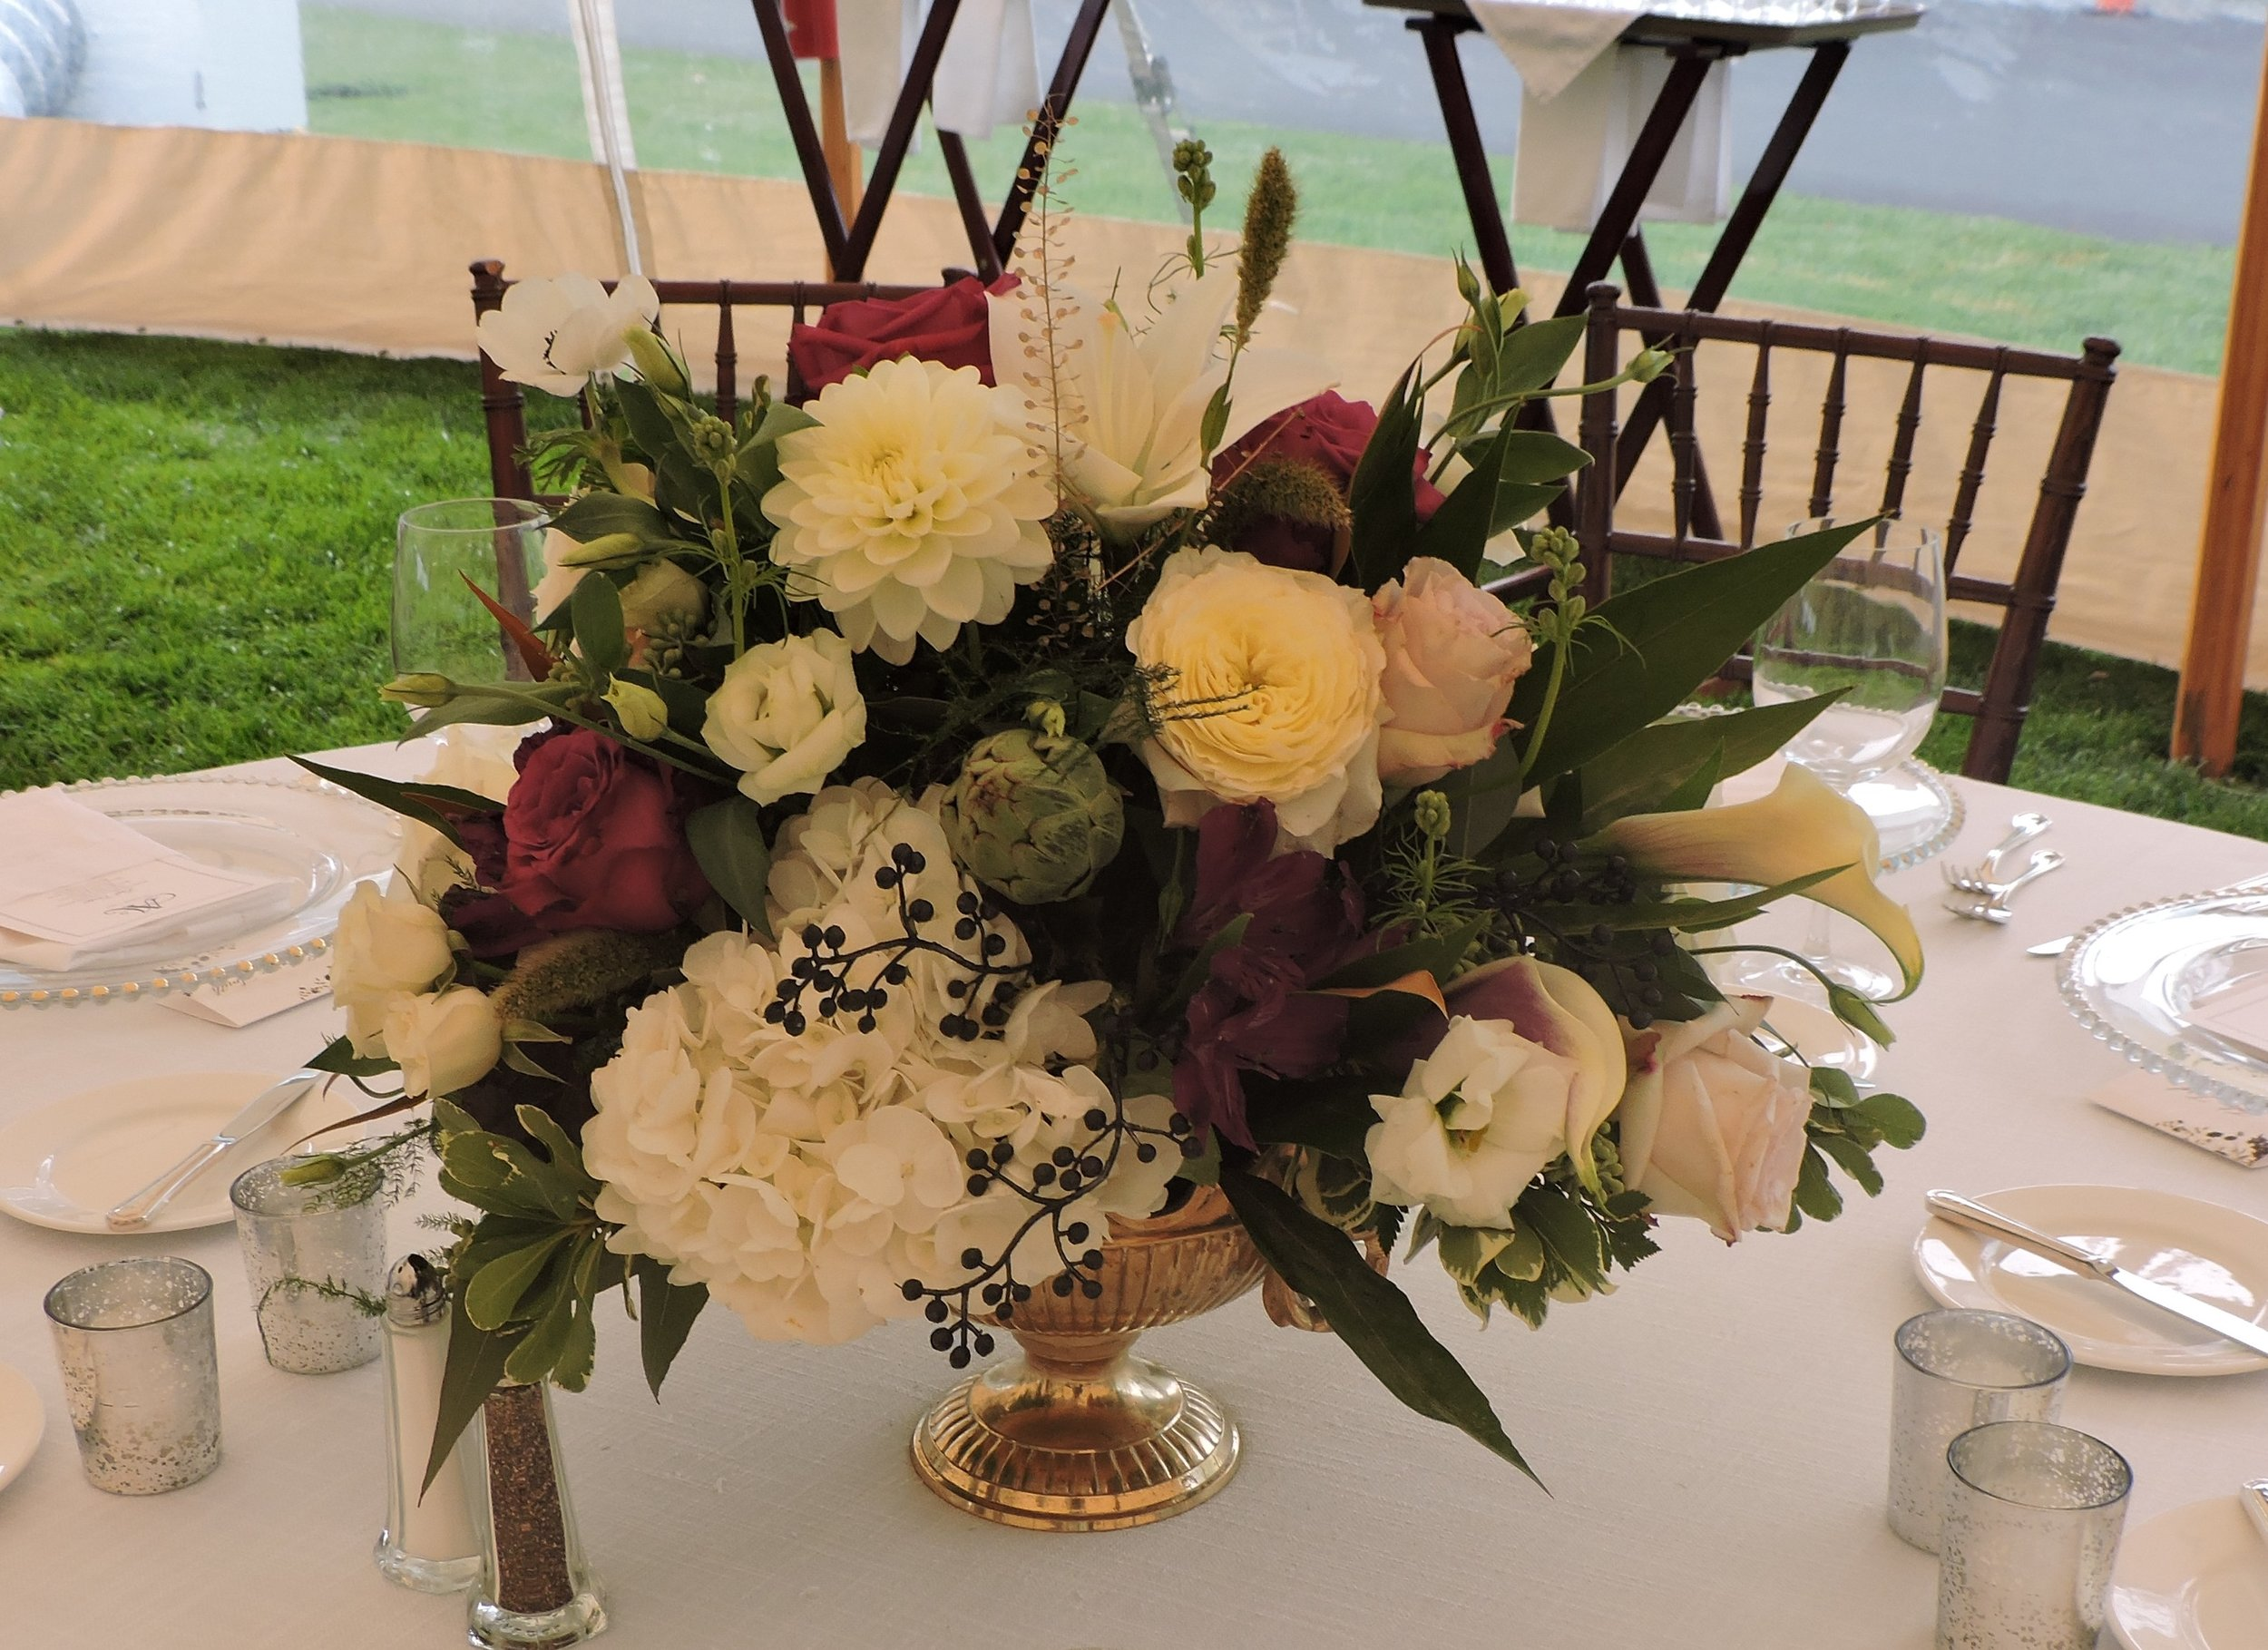 Upscale design including anemones, dahlias, and garden roses in a golden compote at The Country Club, Brookline, MA by Maureen Christmas AIFD CFD EMC of Floral Notes, Acton, MA